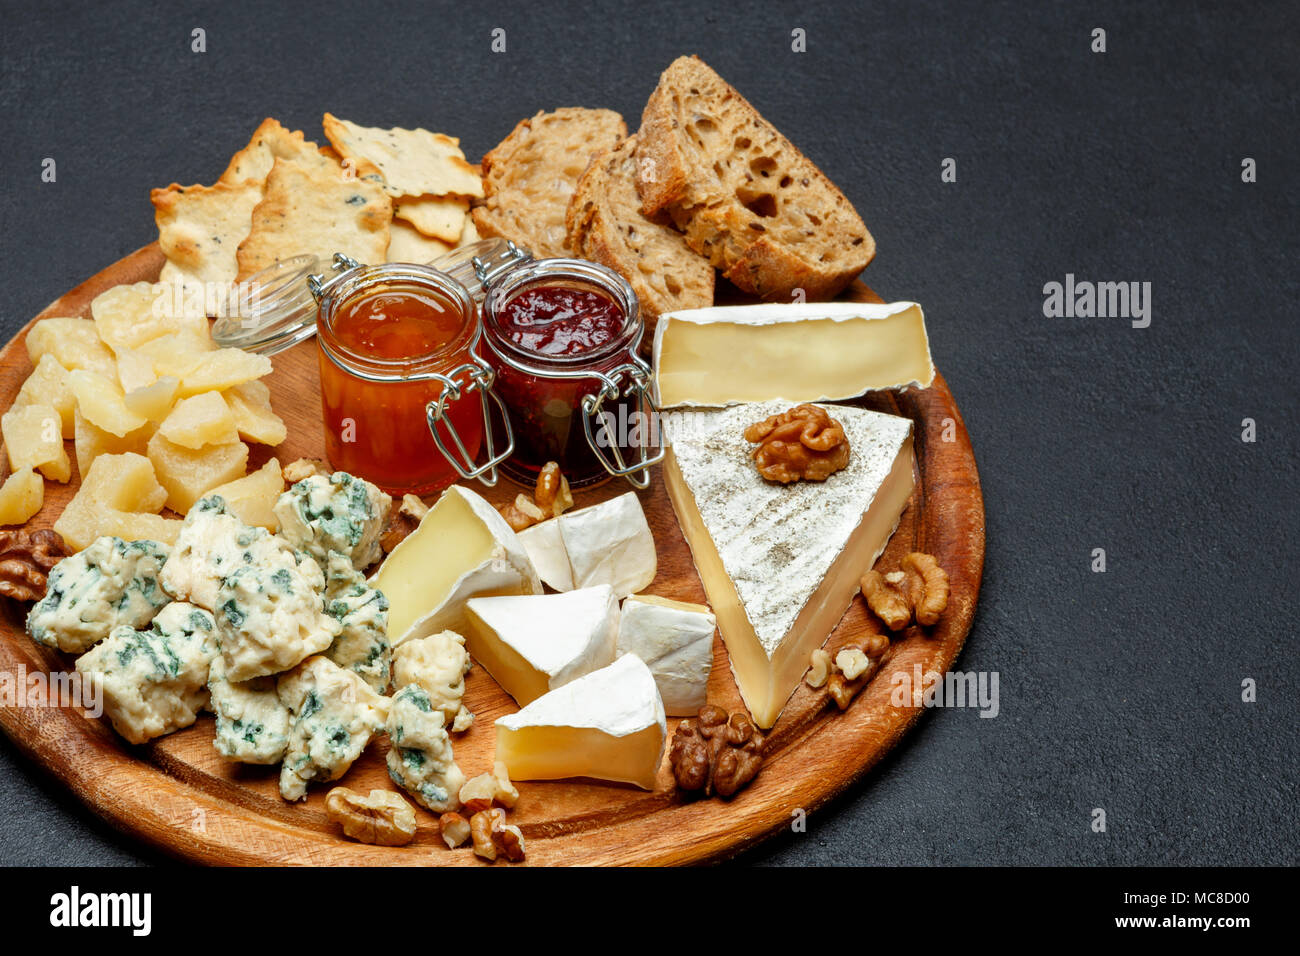 Brie cheese on a wooden Board with bread and sweet jam - Stock Image